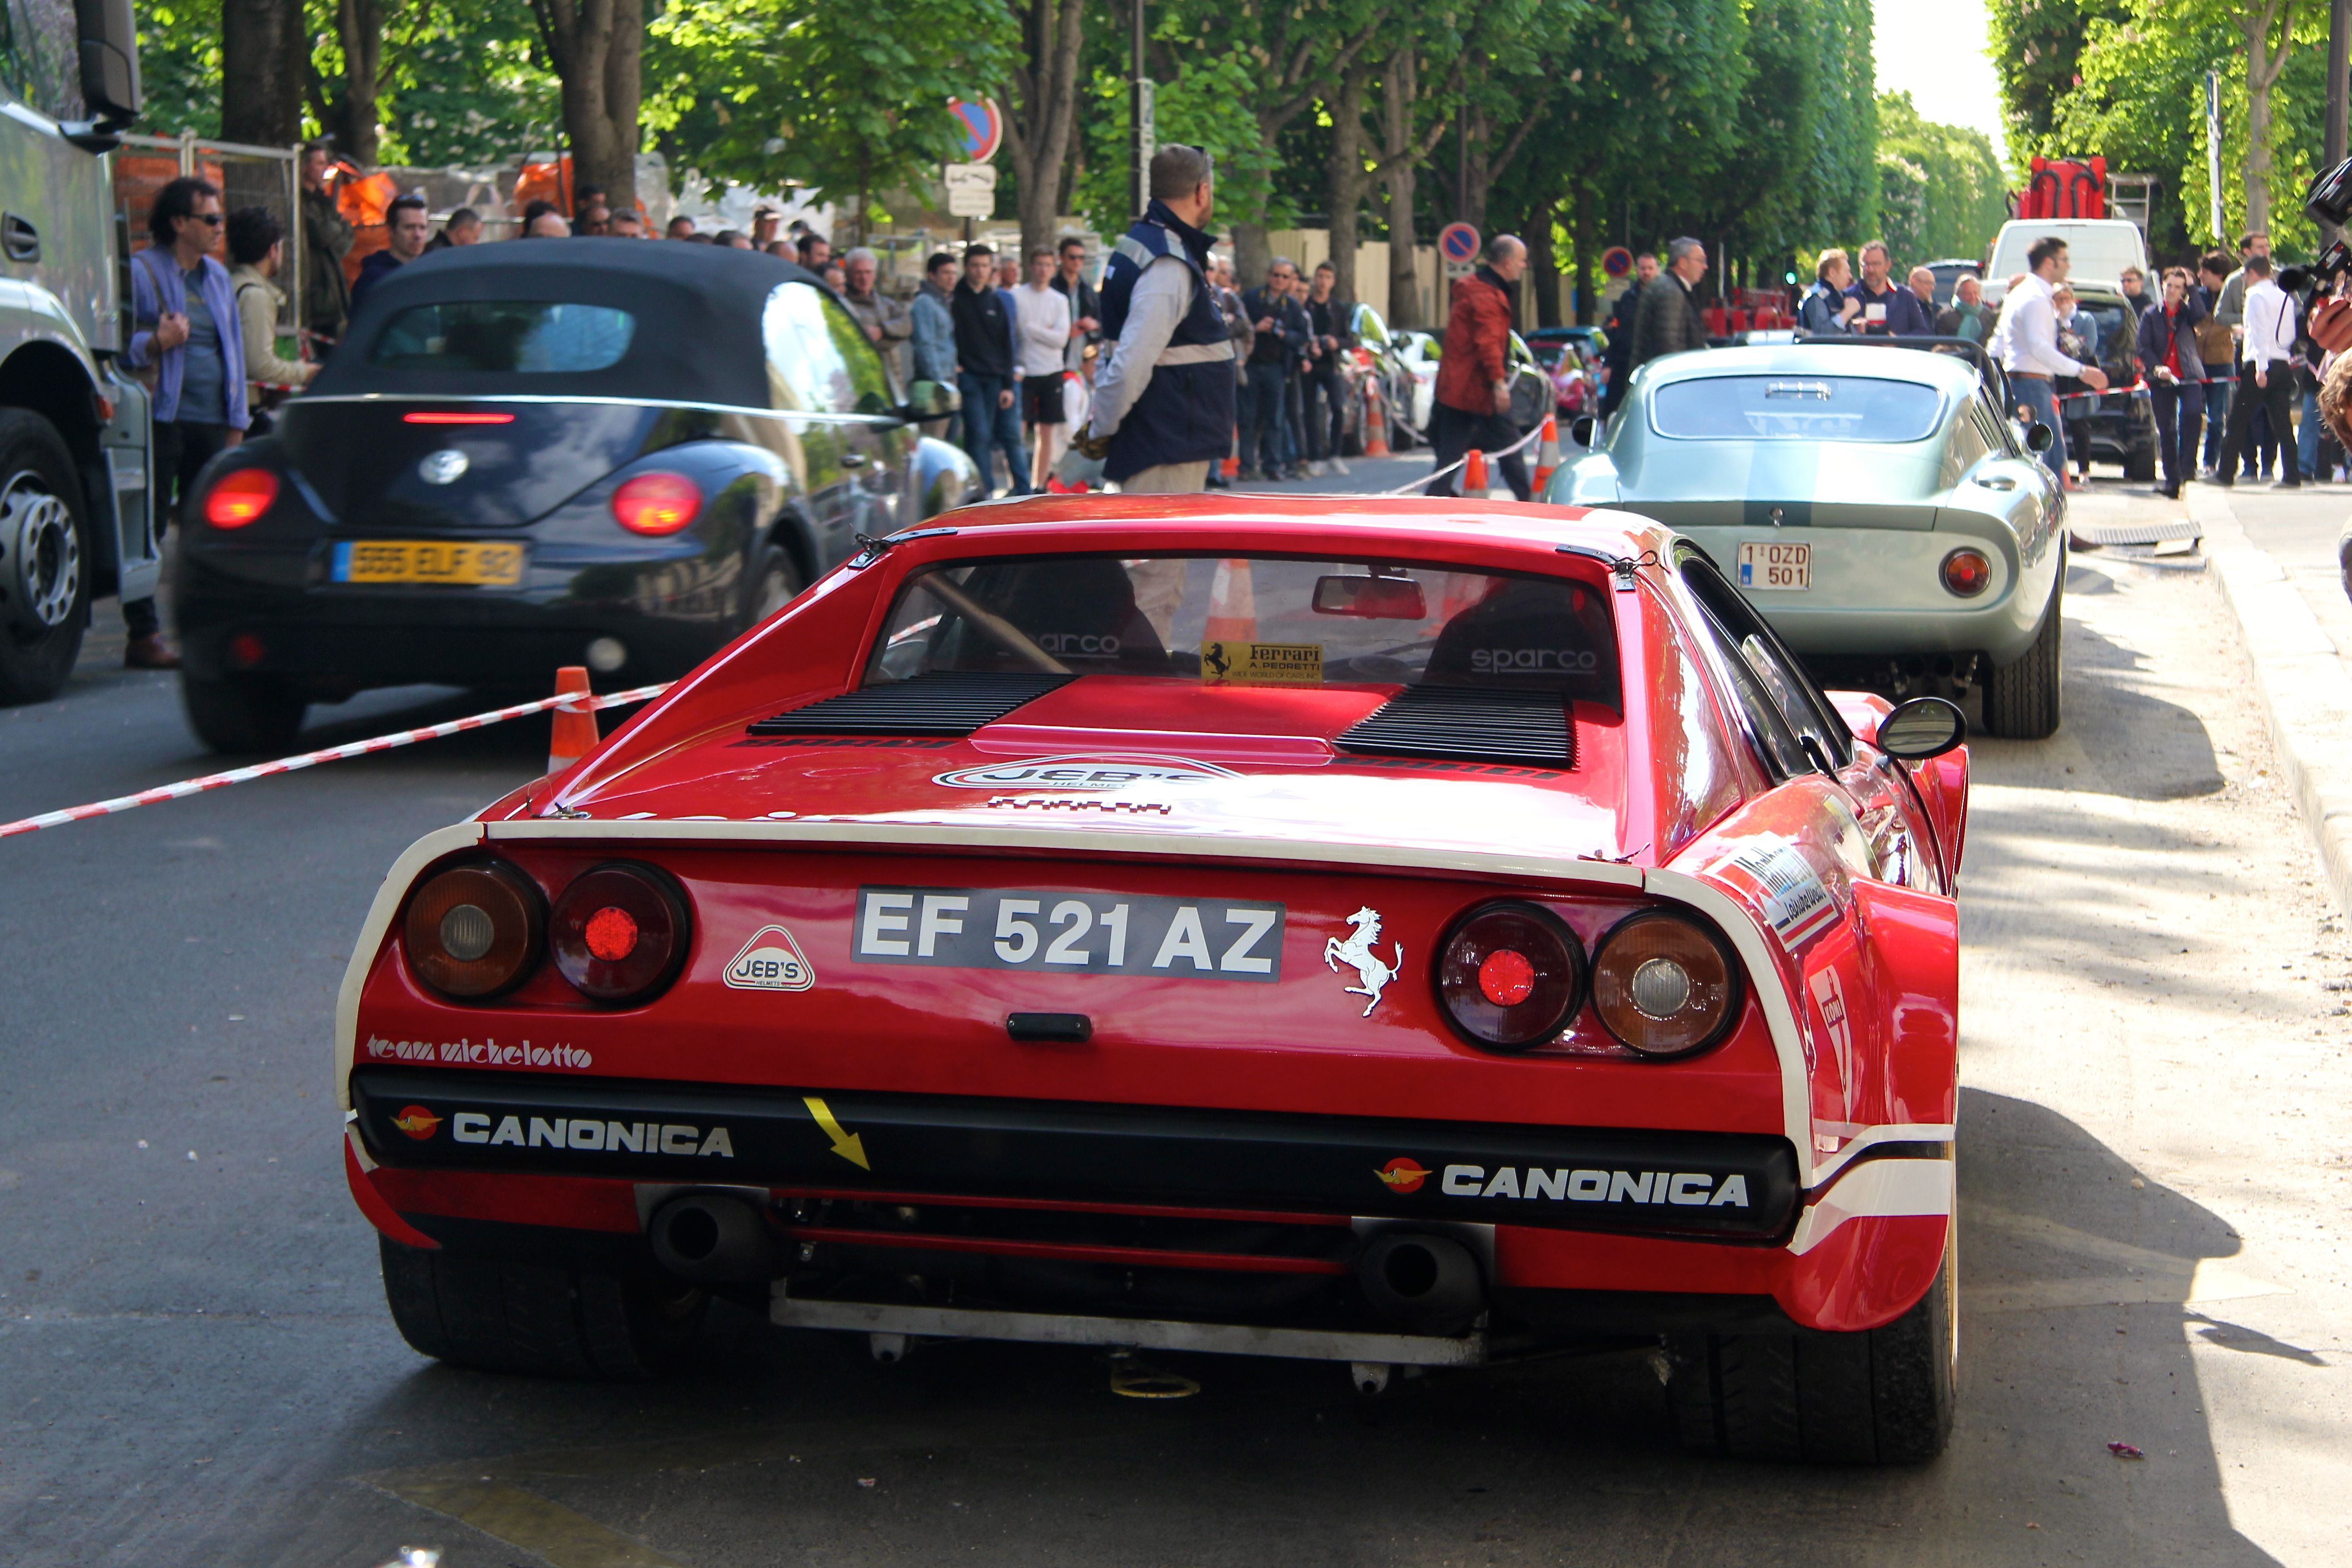 Ferrari 308 Gr IV - Paris - Tour Auto 2017 - photo Ludo Ferrari